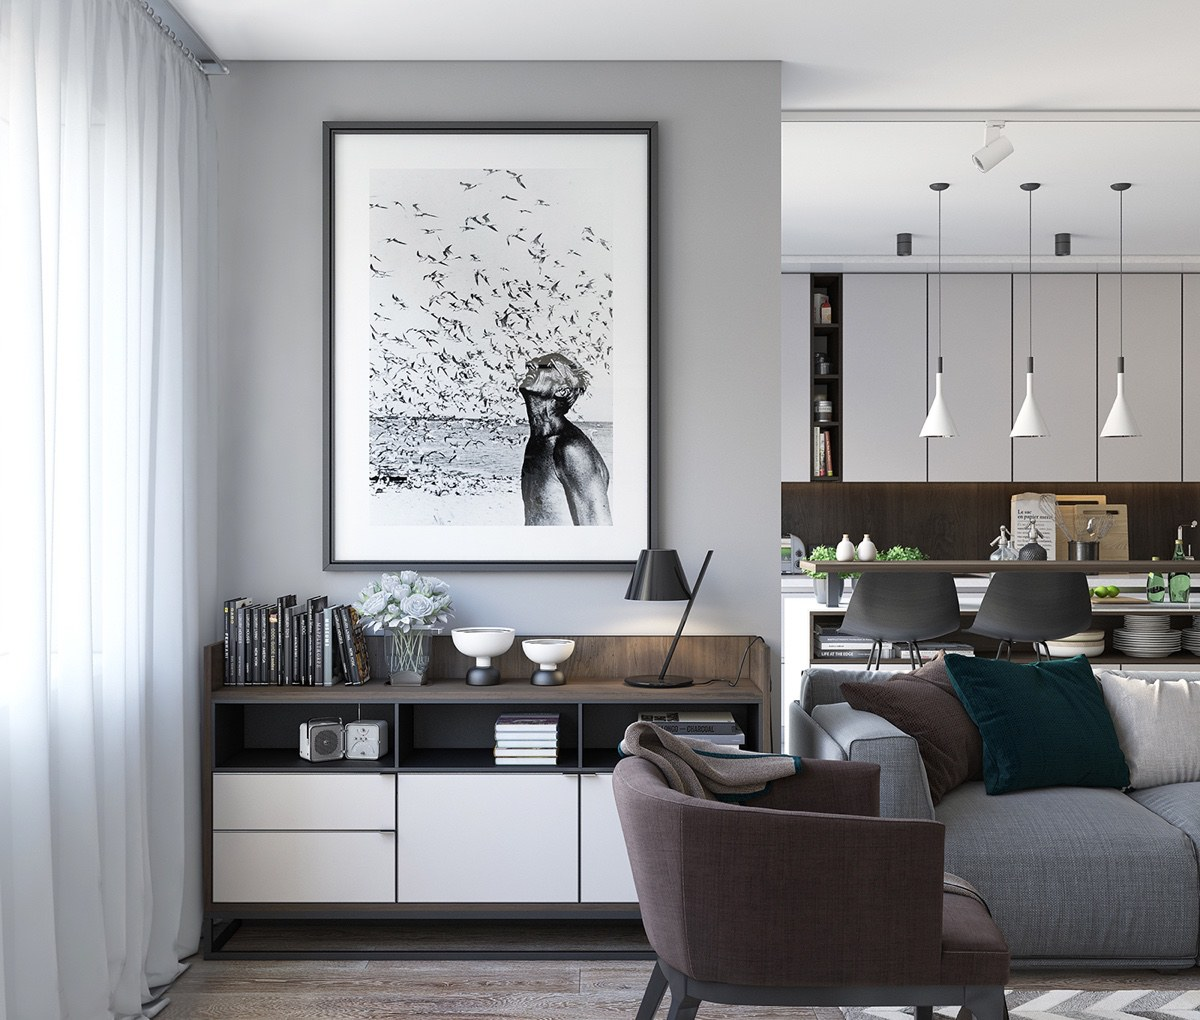 Liquor Cabinet Contemporary Feature Monochrome Print - Spacious looking one bedroom apartment with dark wood accents